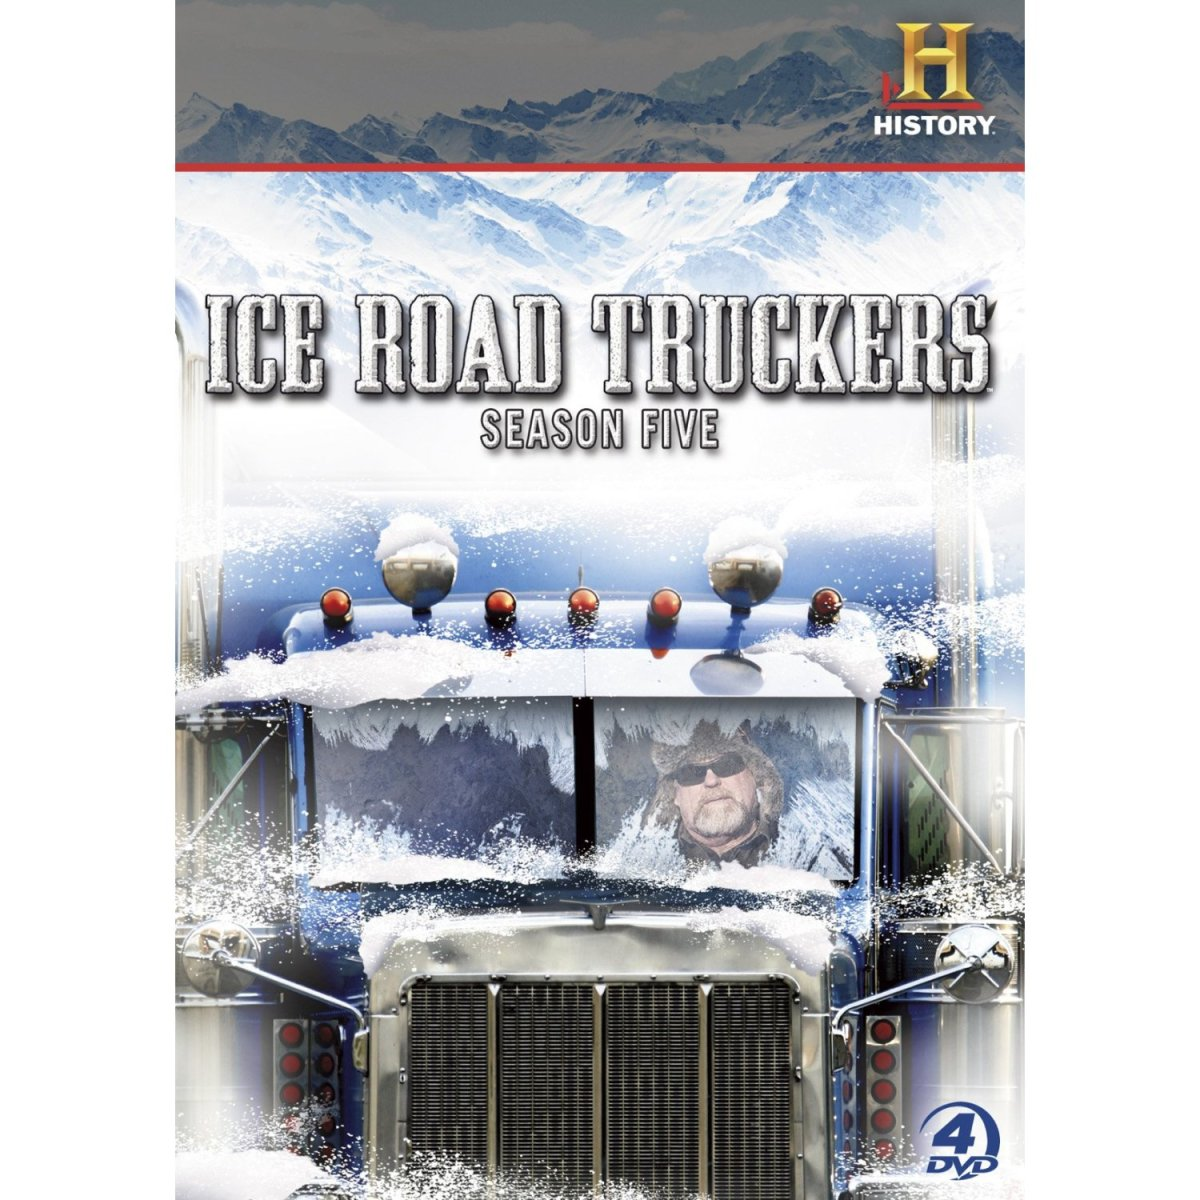 Ice Road Truckers: Season Five – DVD Review